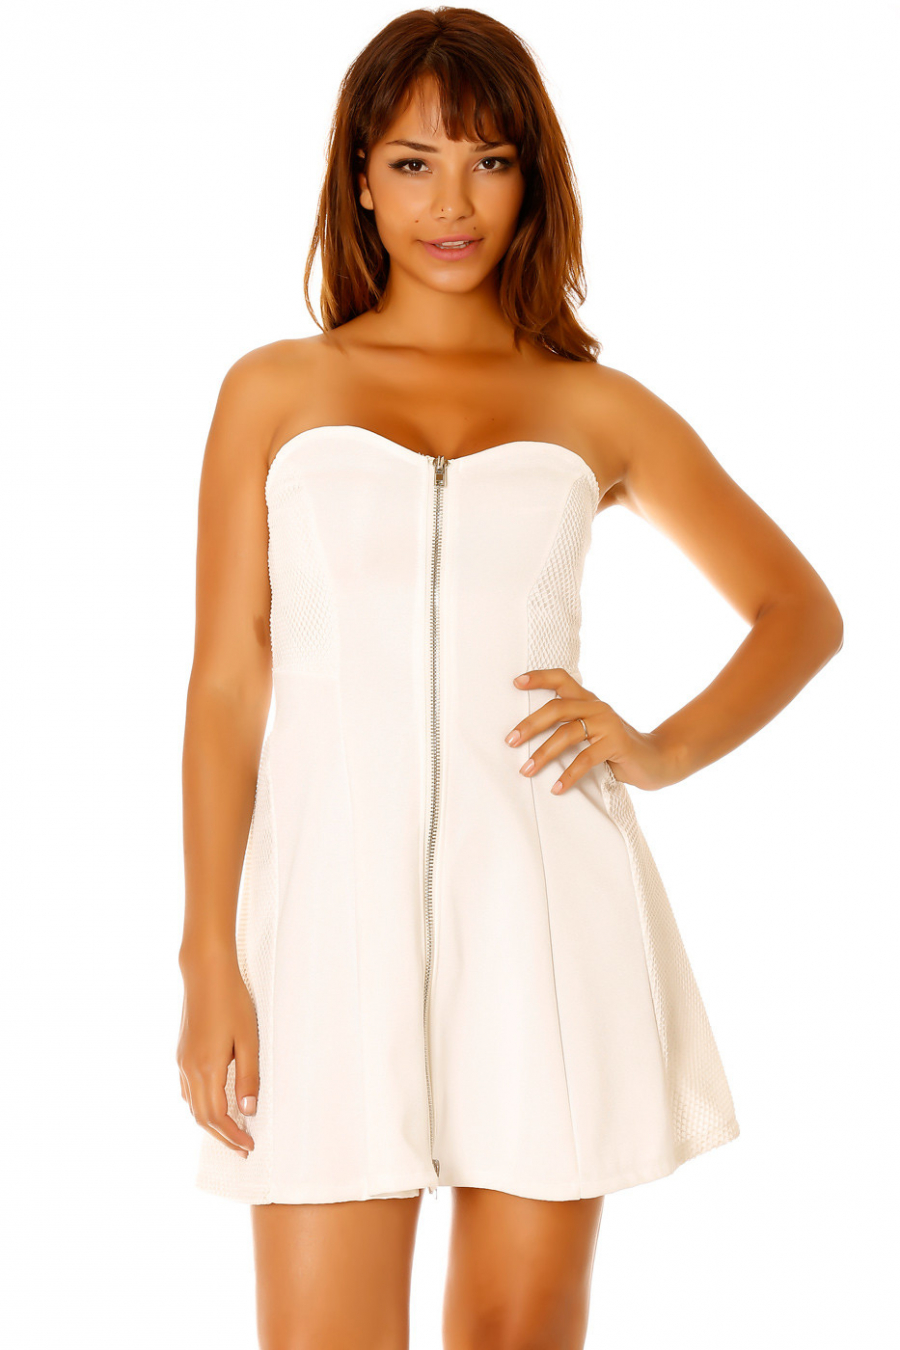 White strapless dress, zip on the center front. Female LC-0156